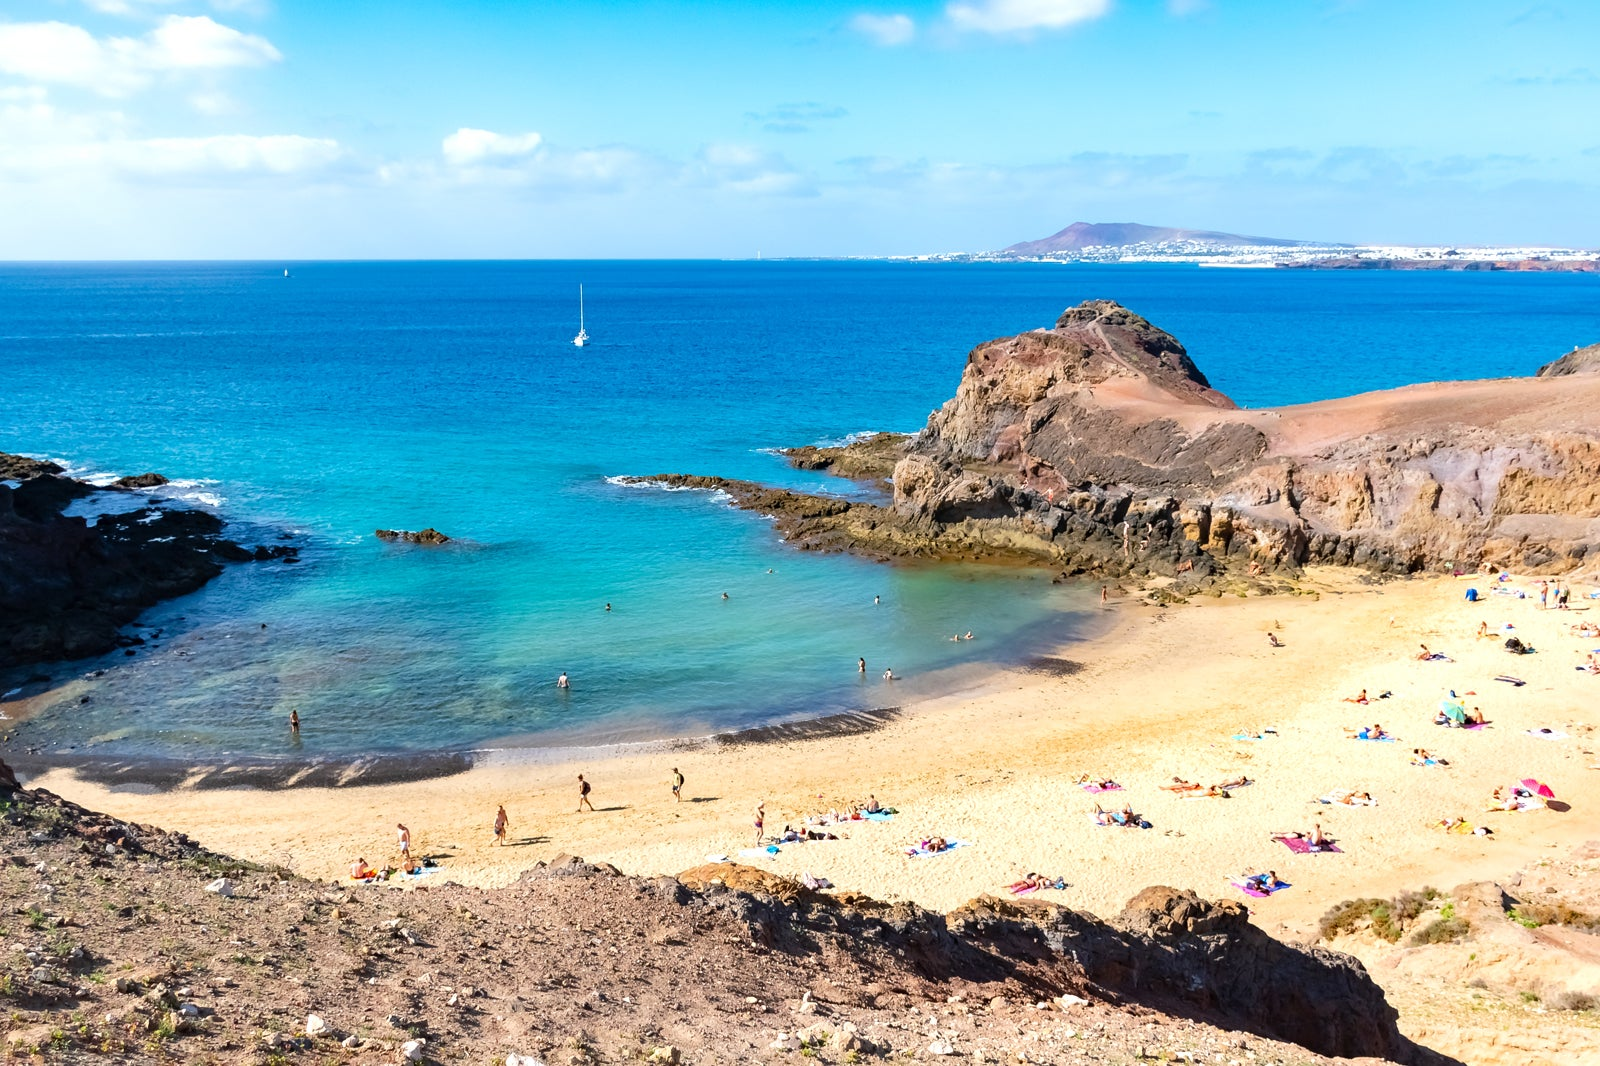 10 Free Things to Do in Lanzarote - Lanzarote for Budget Travellers